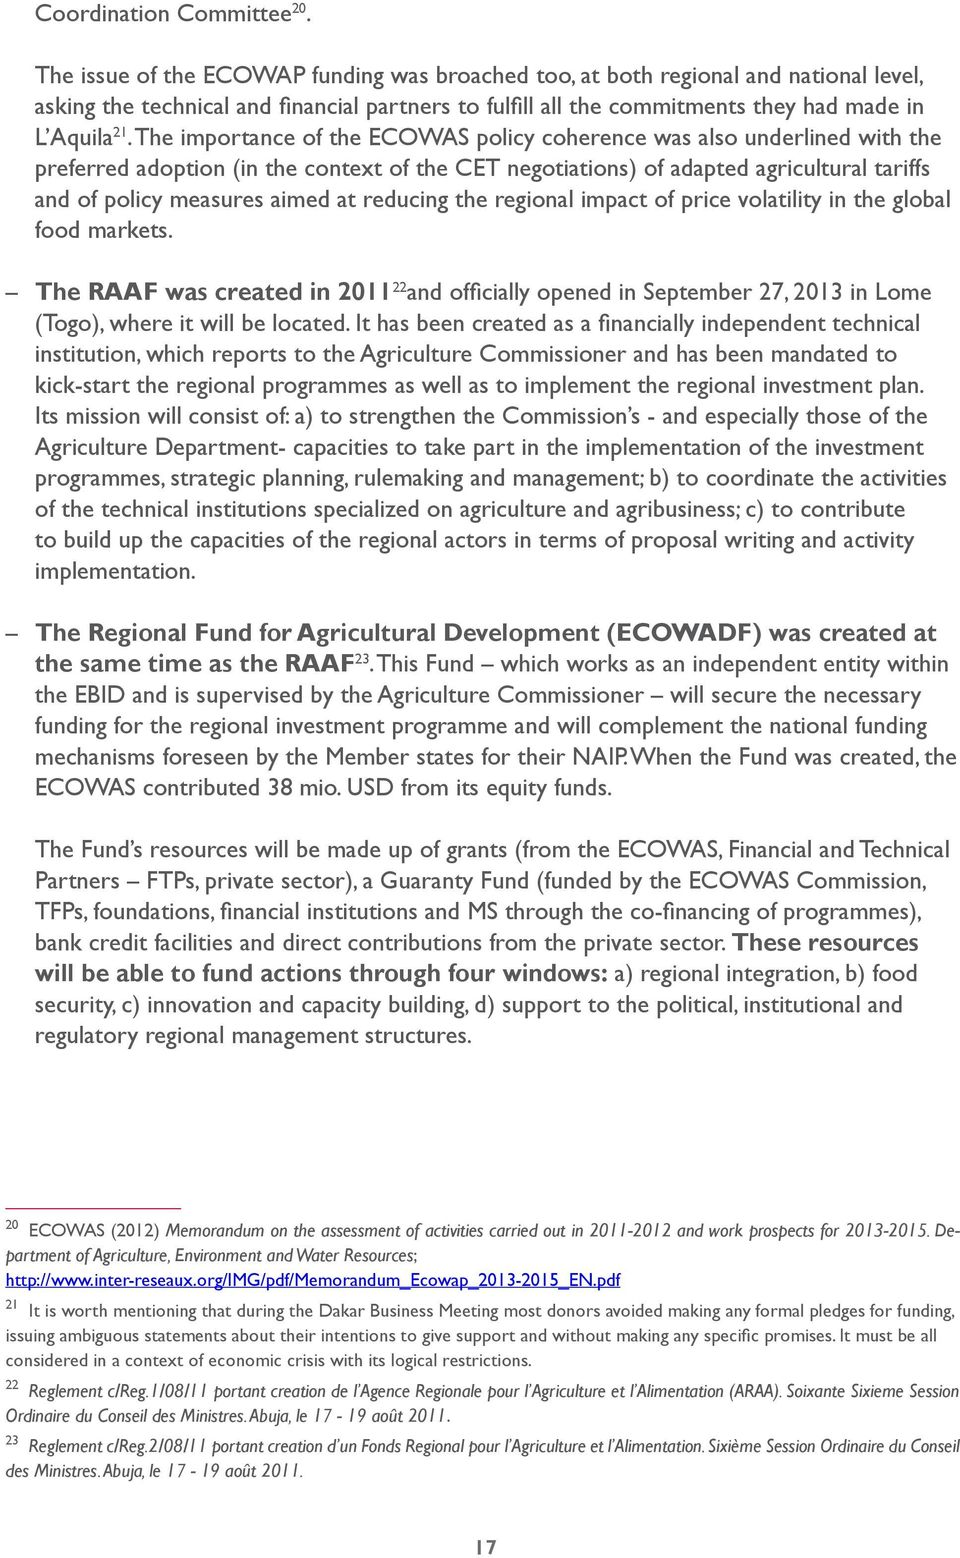 The importance of the ECOWAS policy coherence was also underlined with the preferred adoption (in the context of the CET negotiations) of adapted agricultural tariffs and of policy measures aimed at